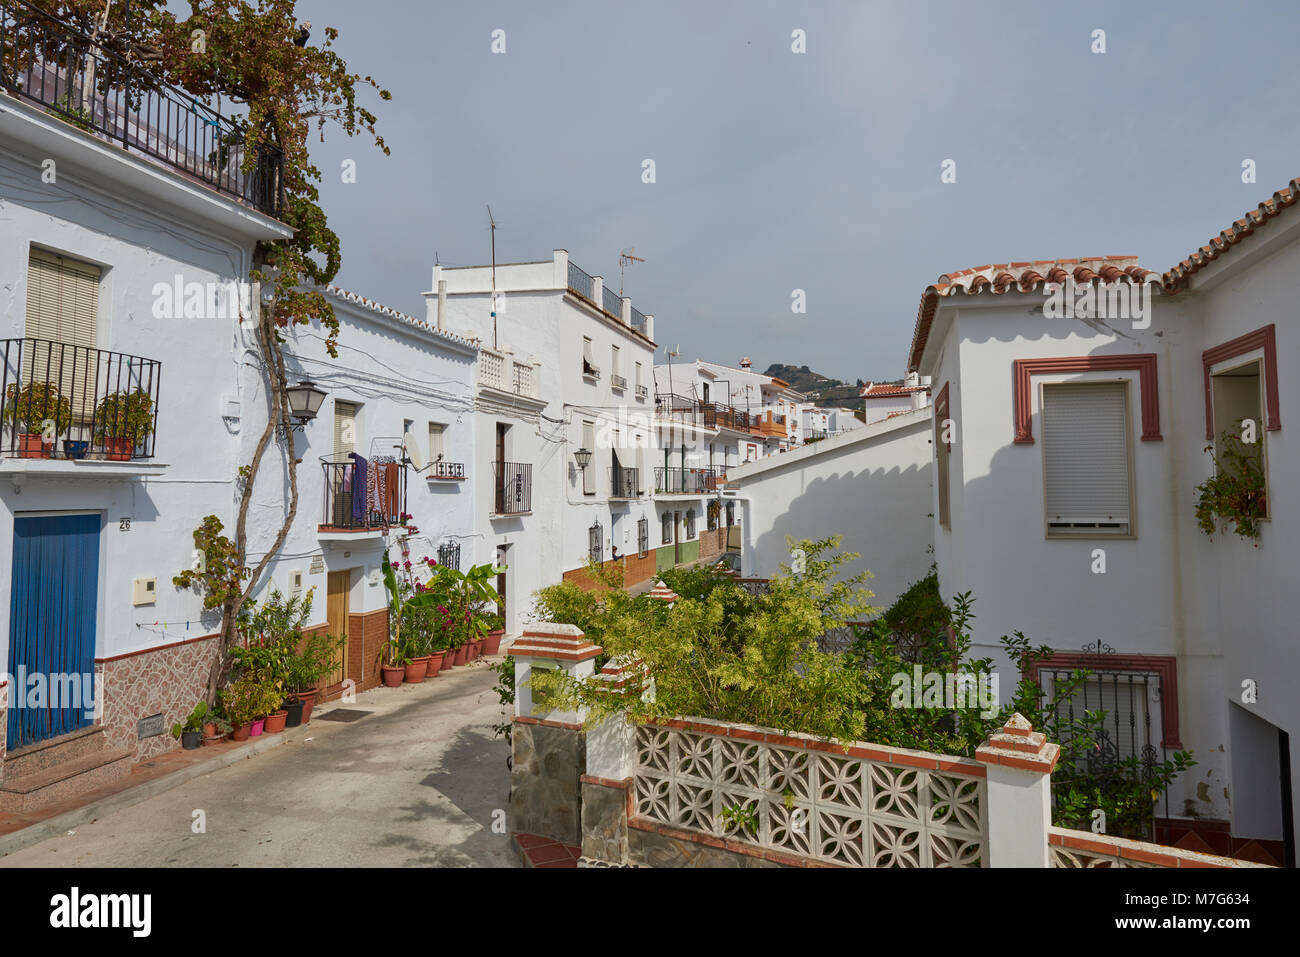 The Streets of Sayalonga remain deserted during the Spanish siesta period on a hot Summer afternoon. - Stock Image